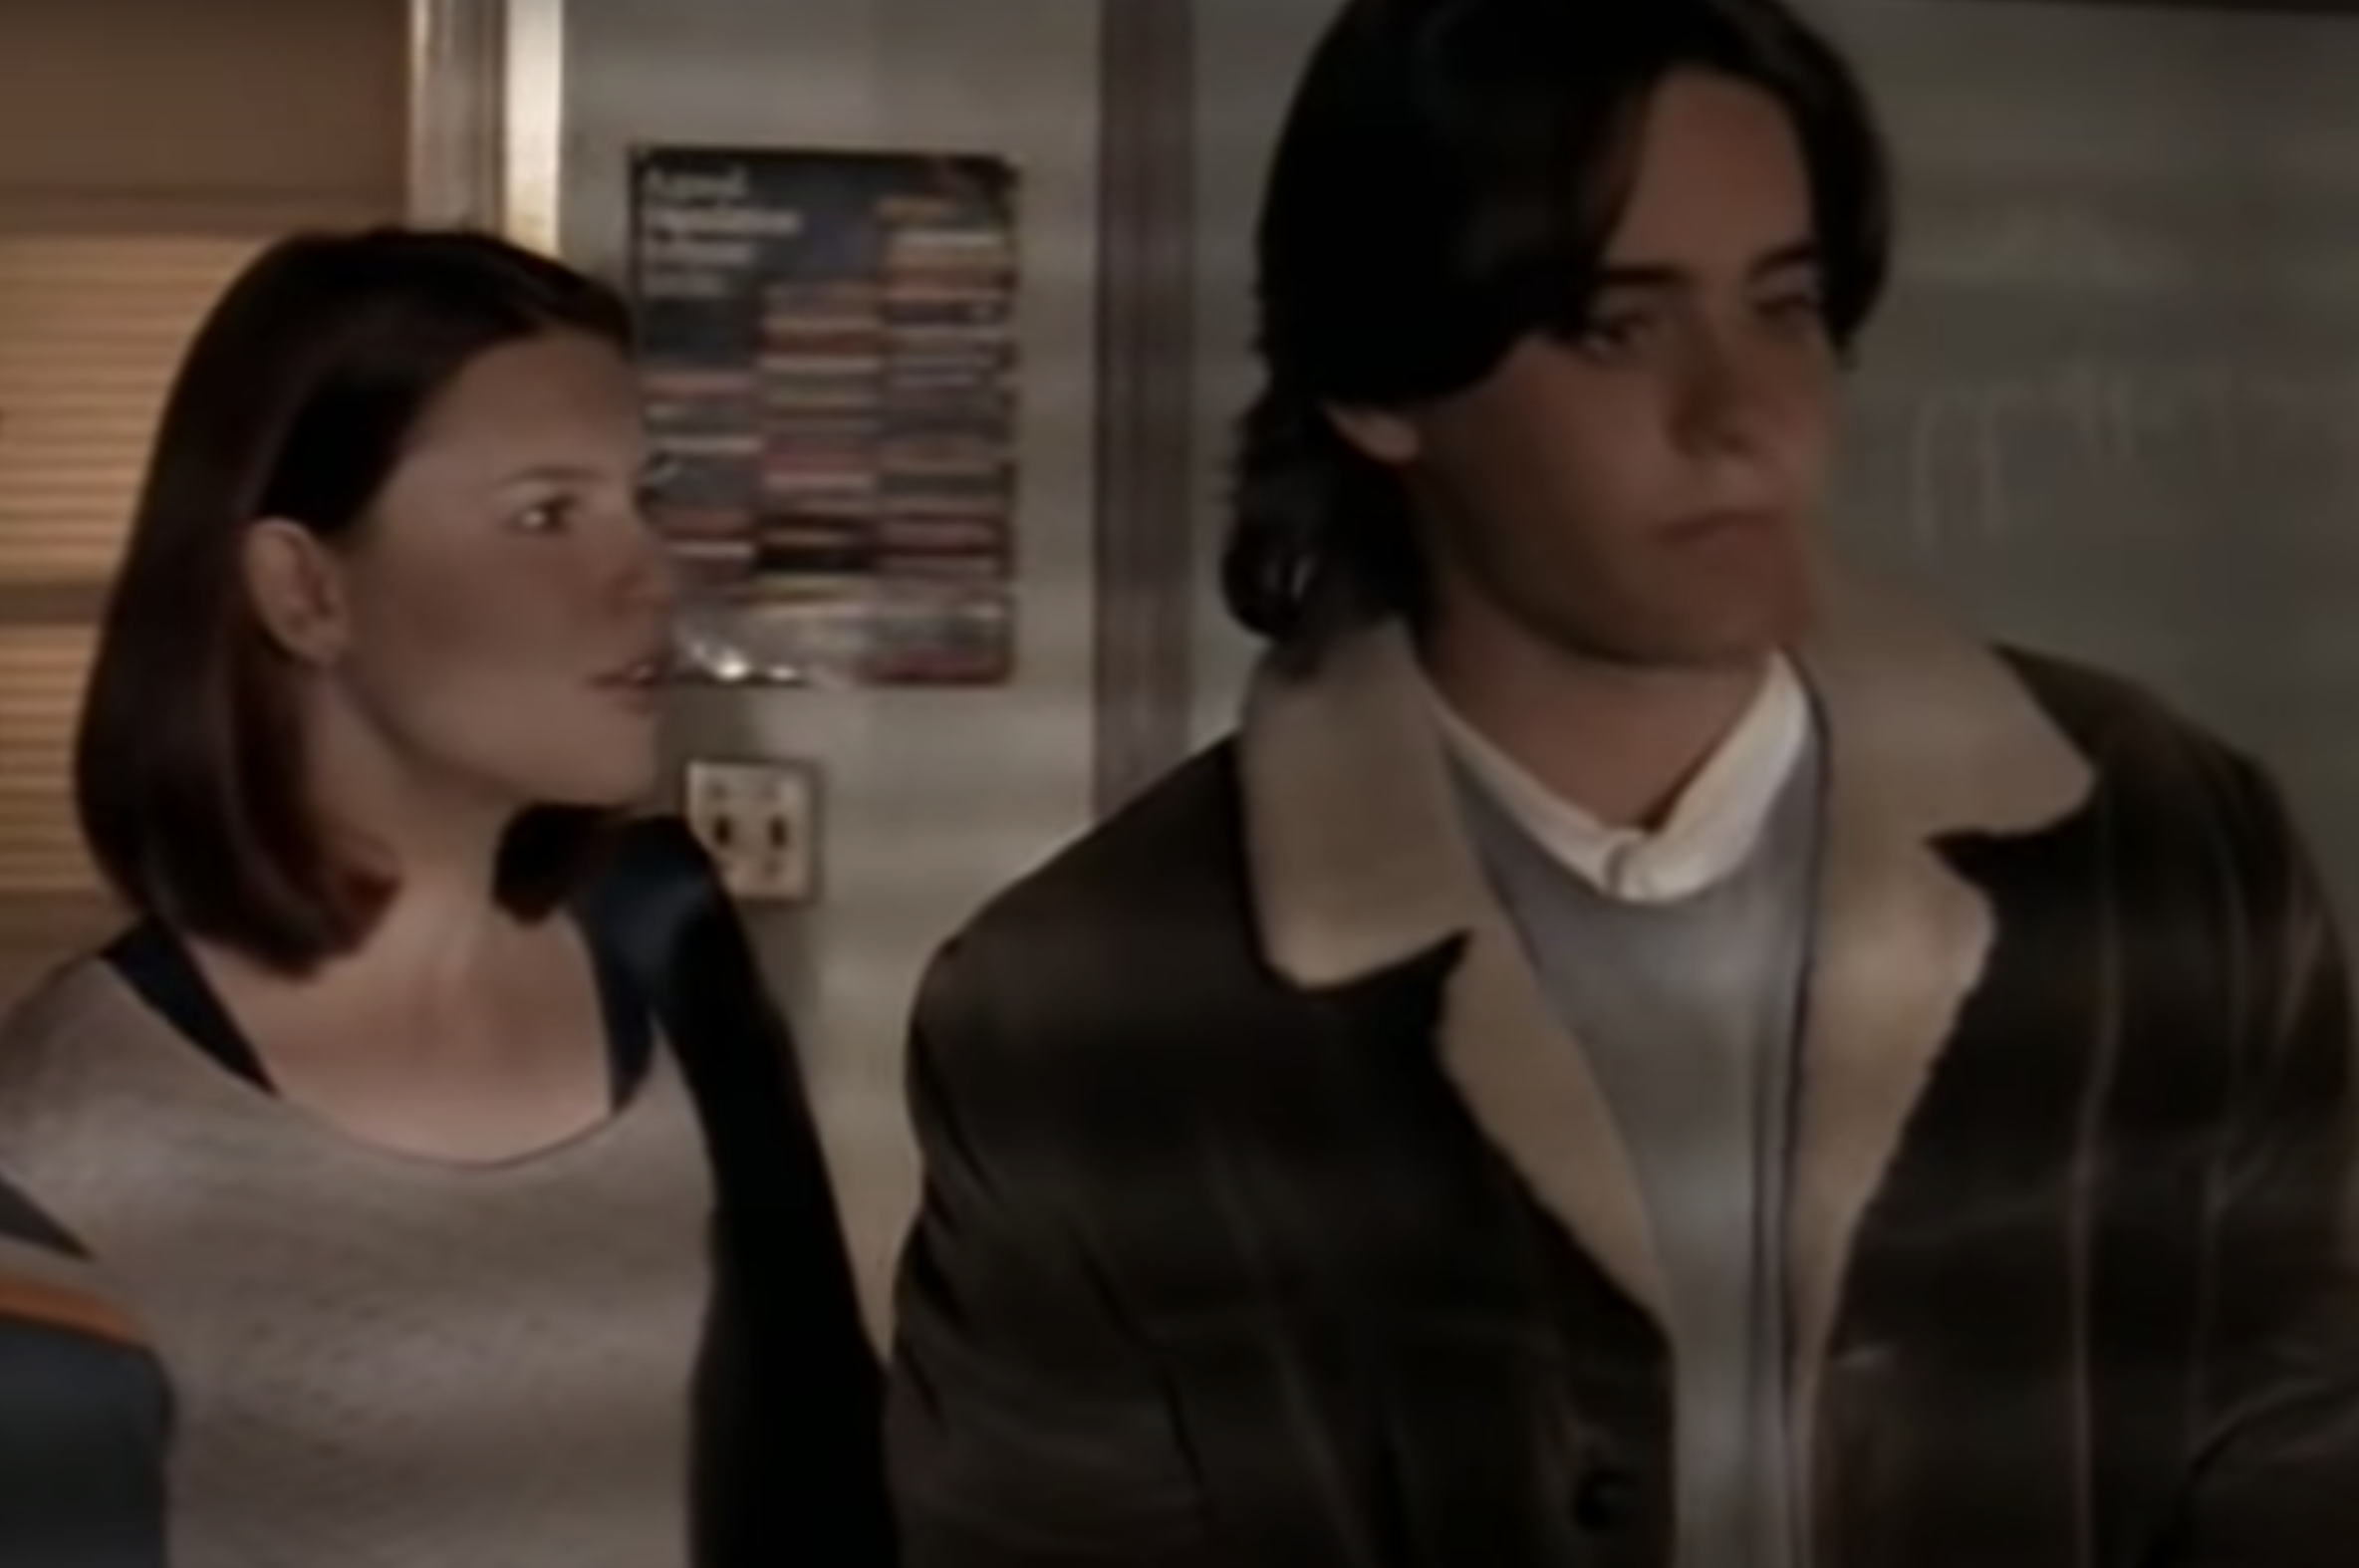 Jared Leto and Claire Danes talking in a scene from the show